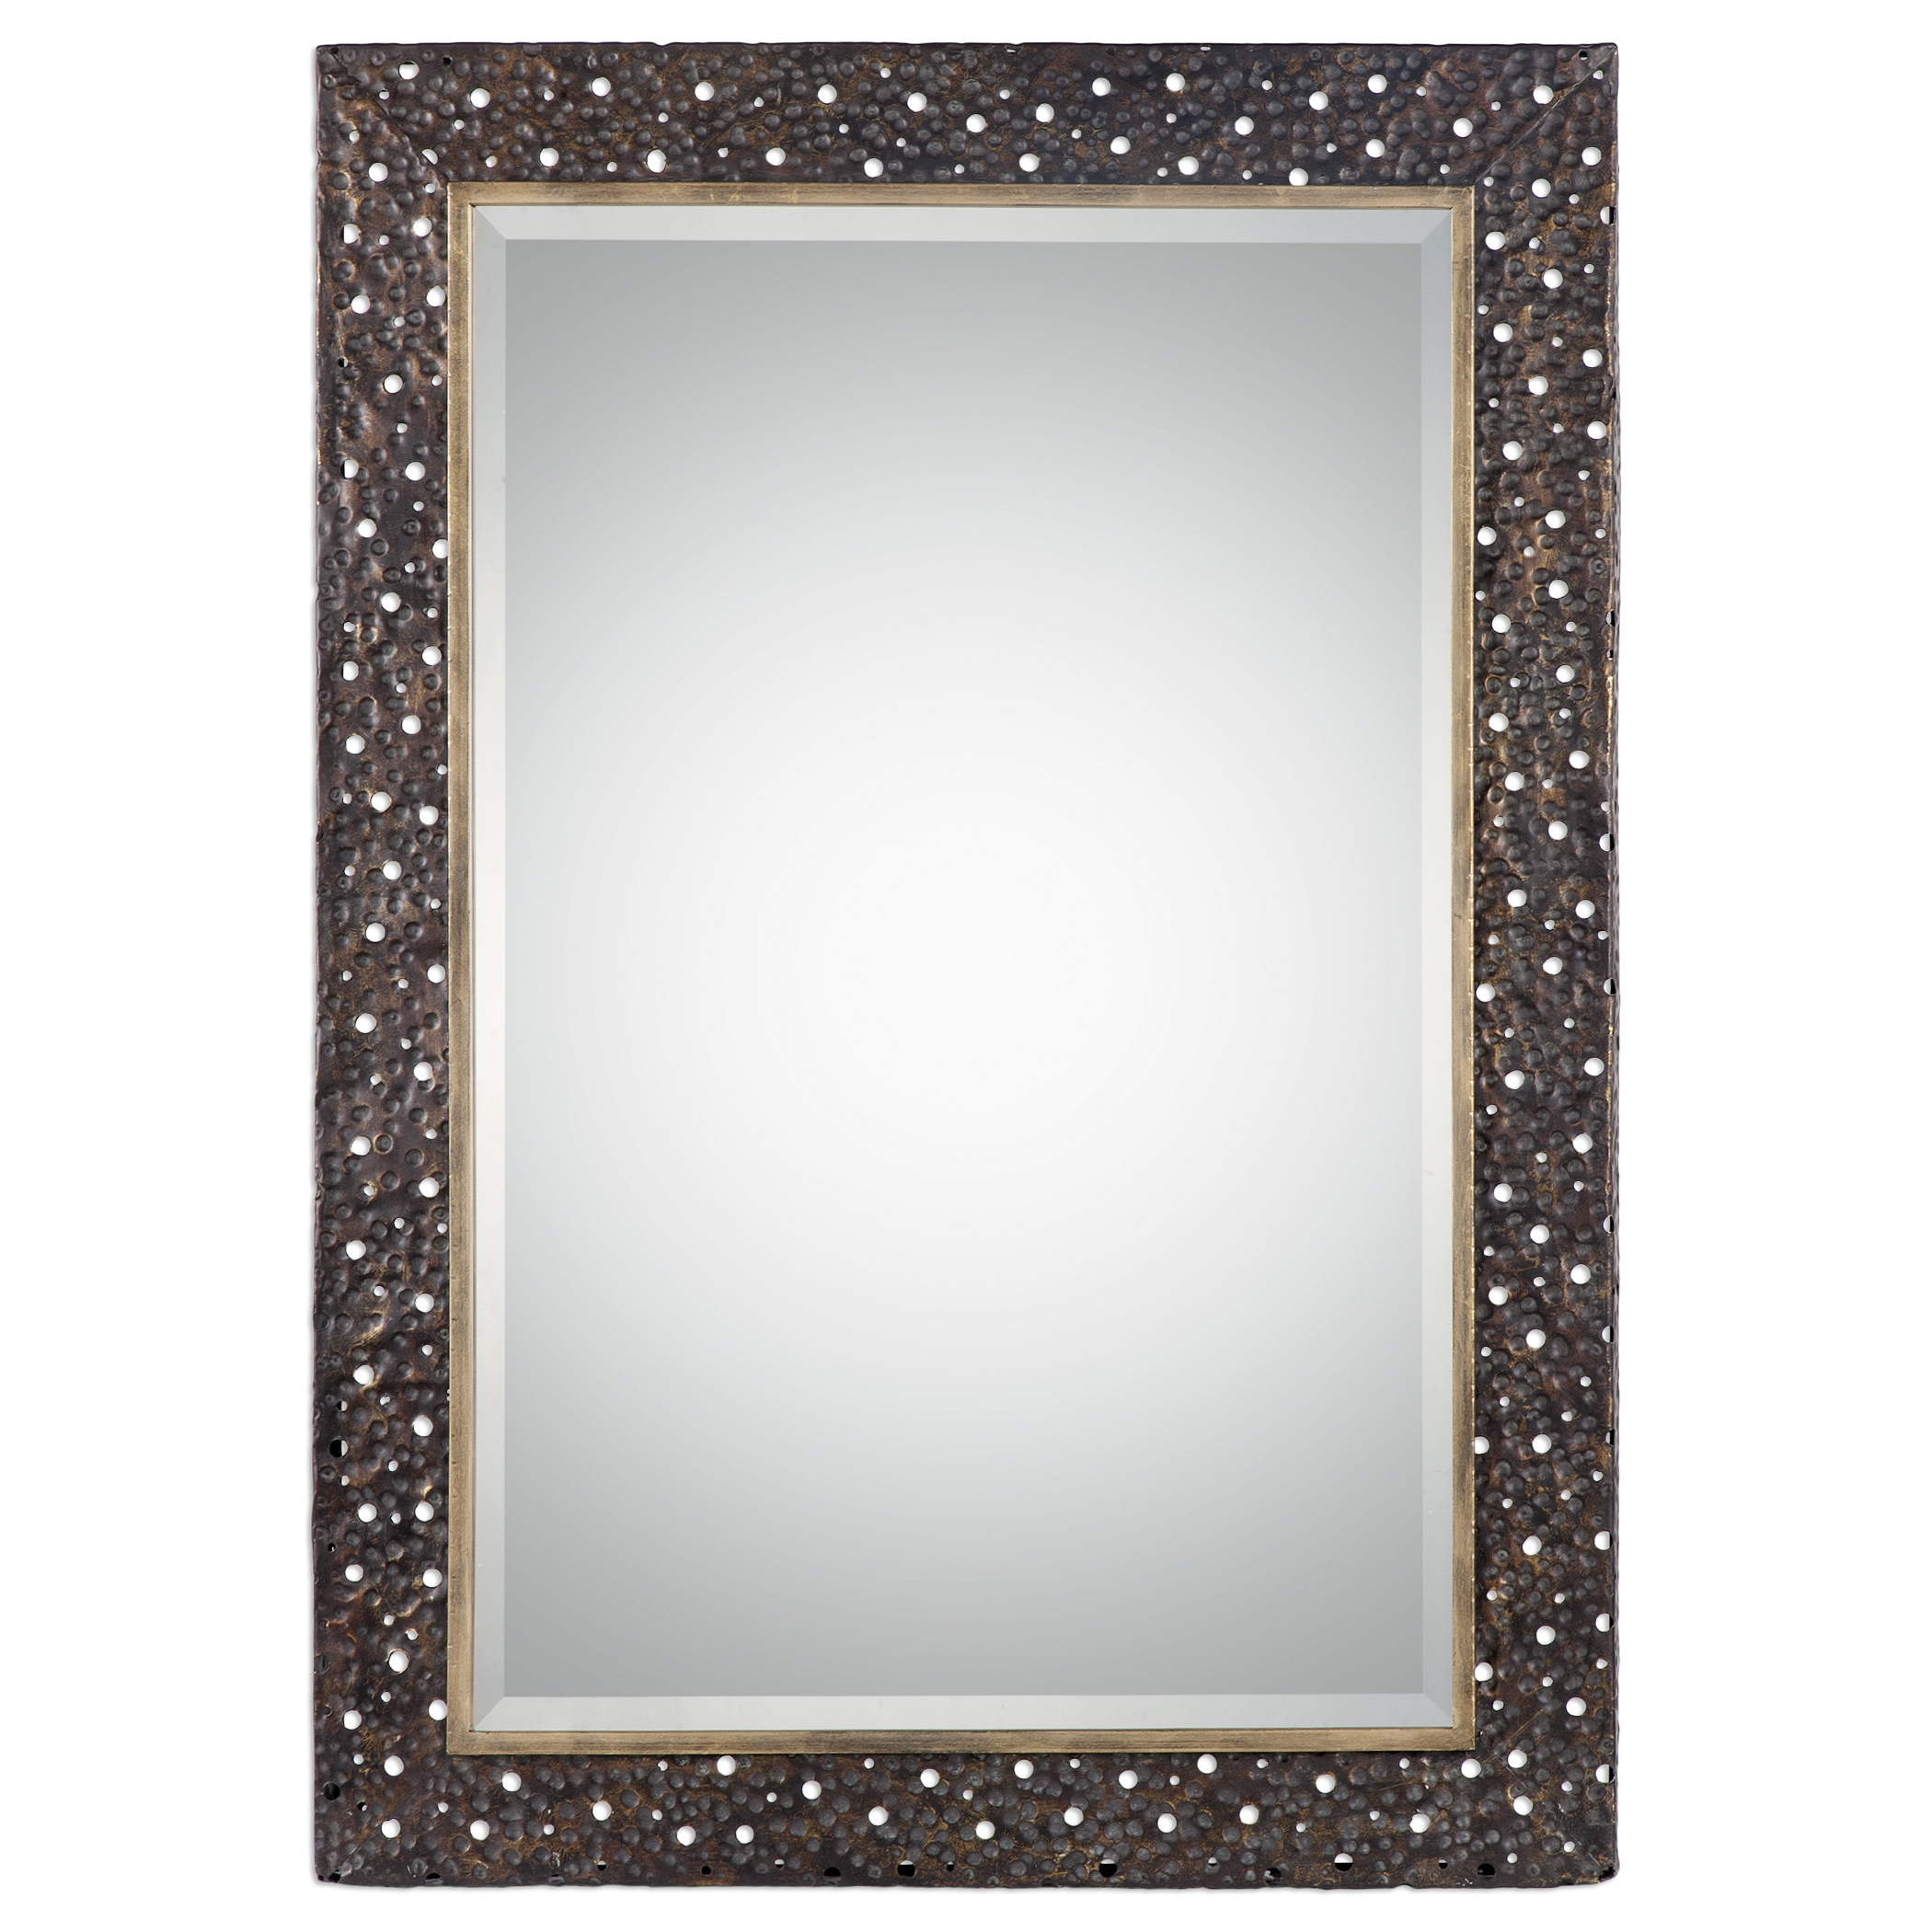 Uttermost Mirrors Khalil Dark Bronze Mirror - Item Number: 09101